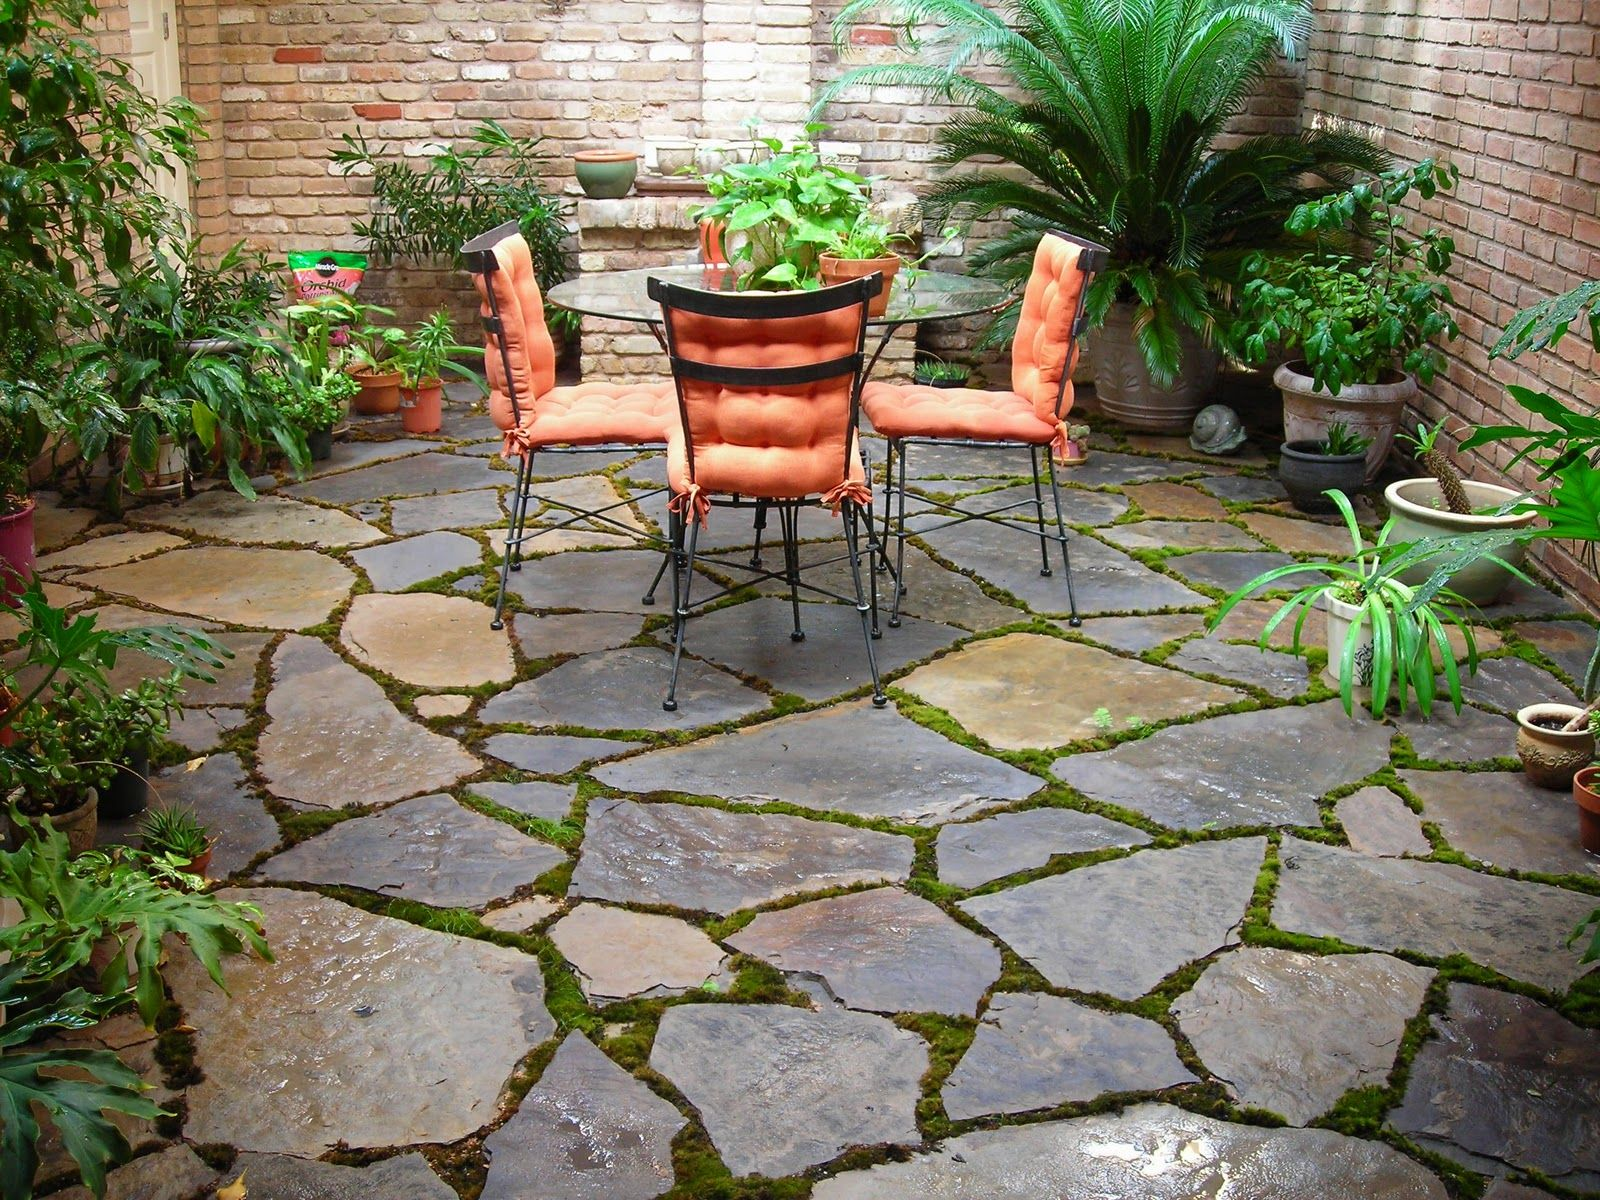 20 Best Stone Patio Ideas For Your Backyard Garden Designs - Stone-garden-ideas